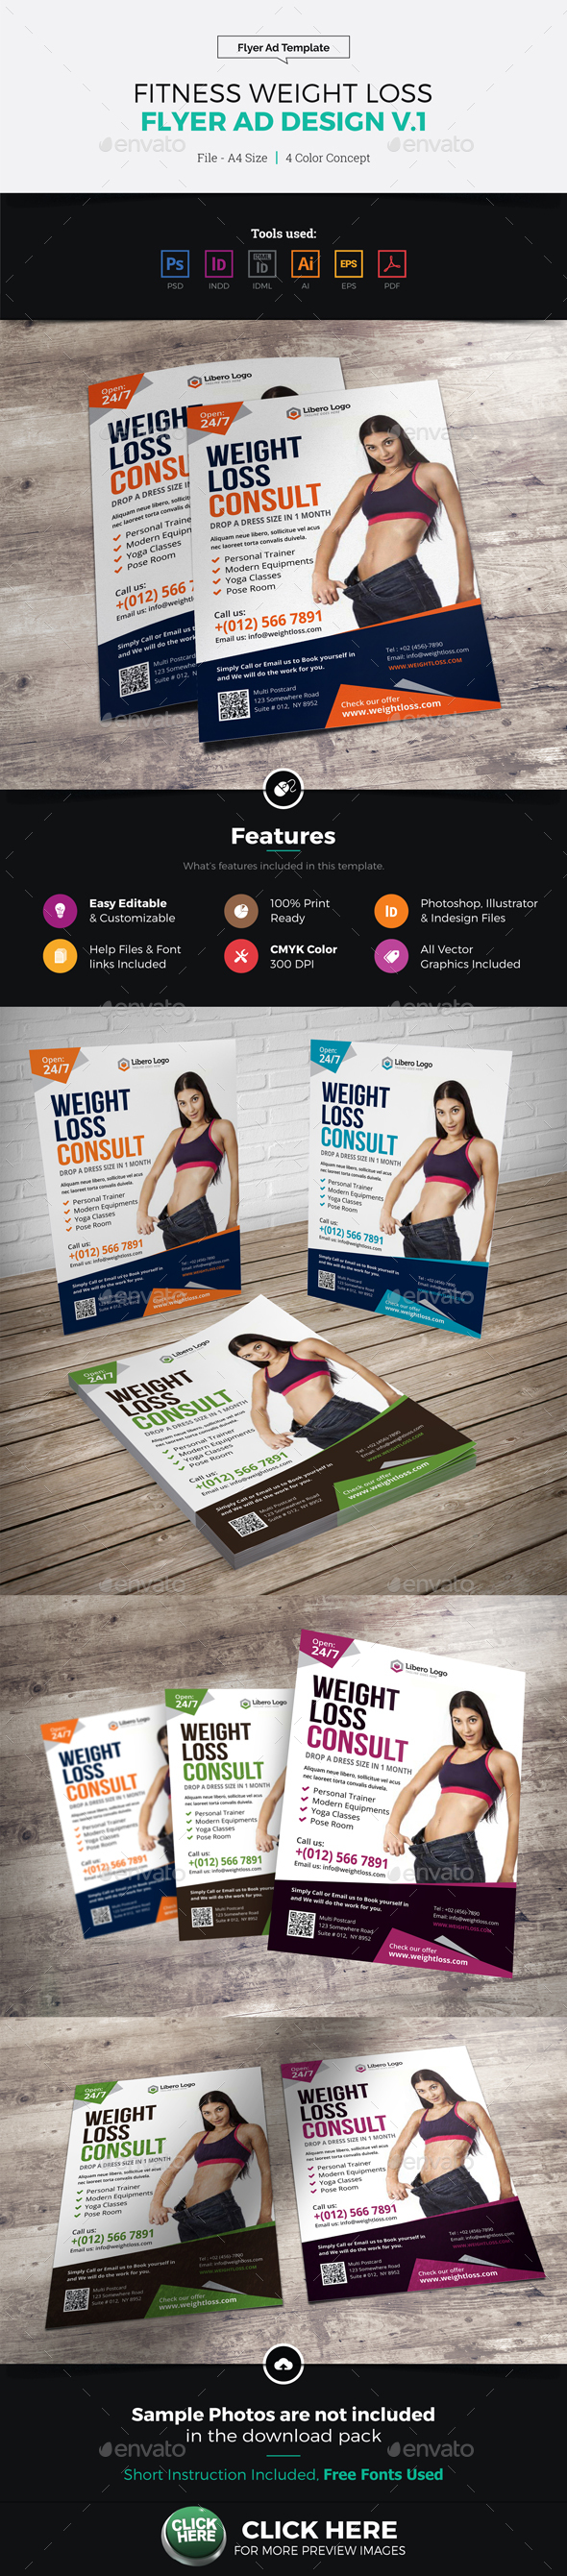 Fitness Weight Loss A5 Flyer Design - Corporate Flyers